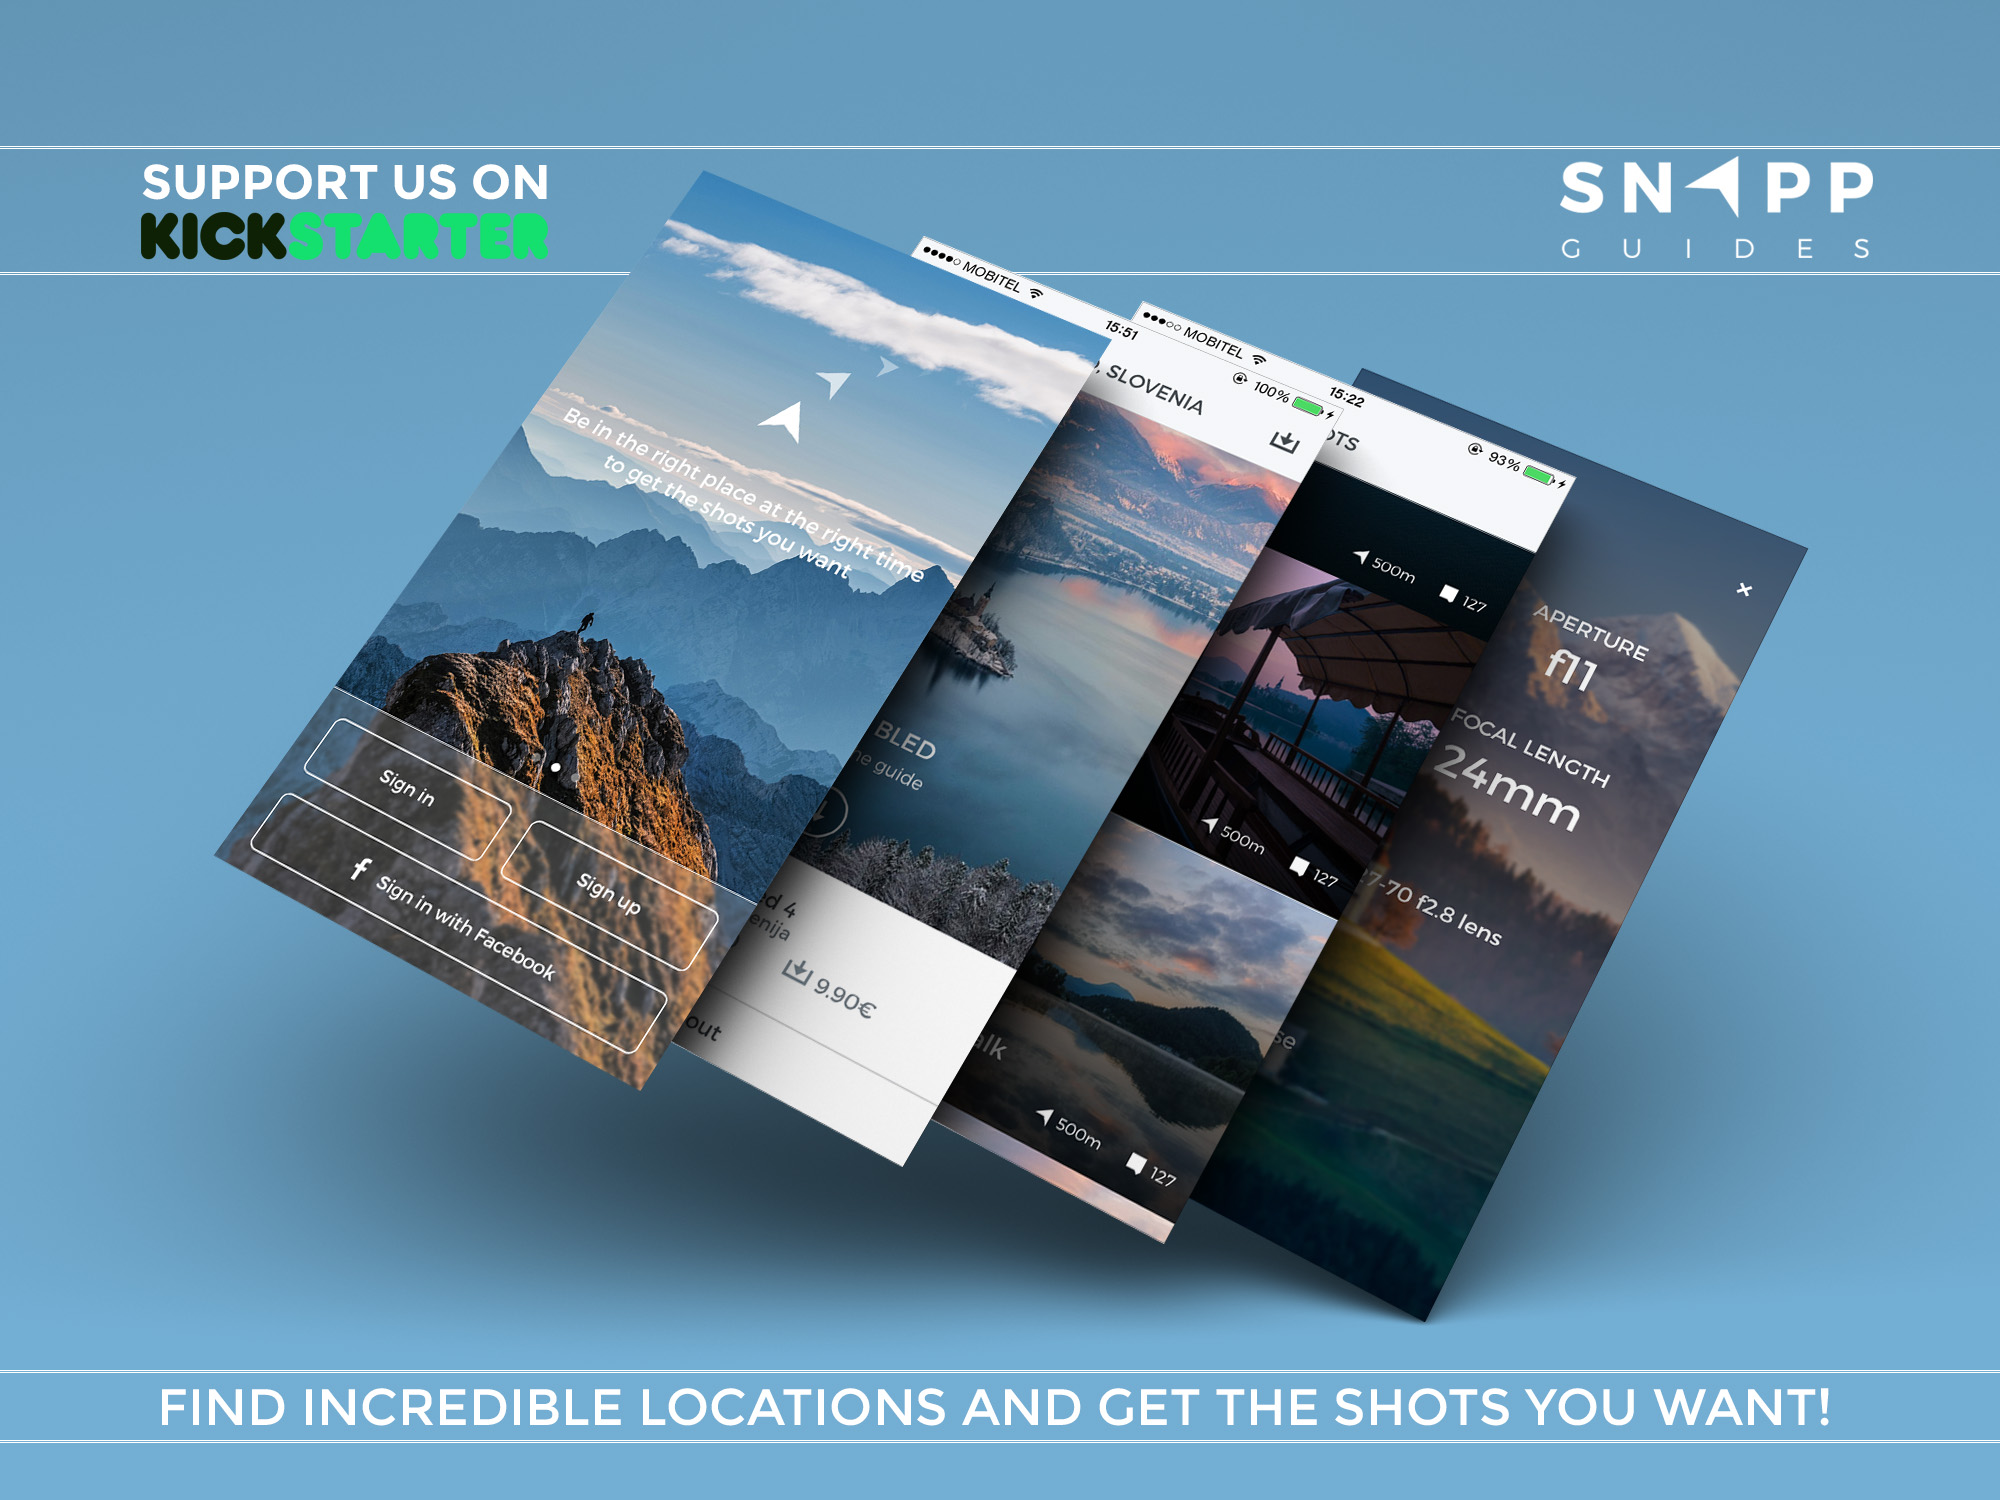 SNAPP guides campaign